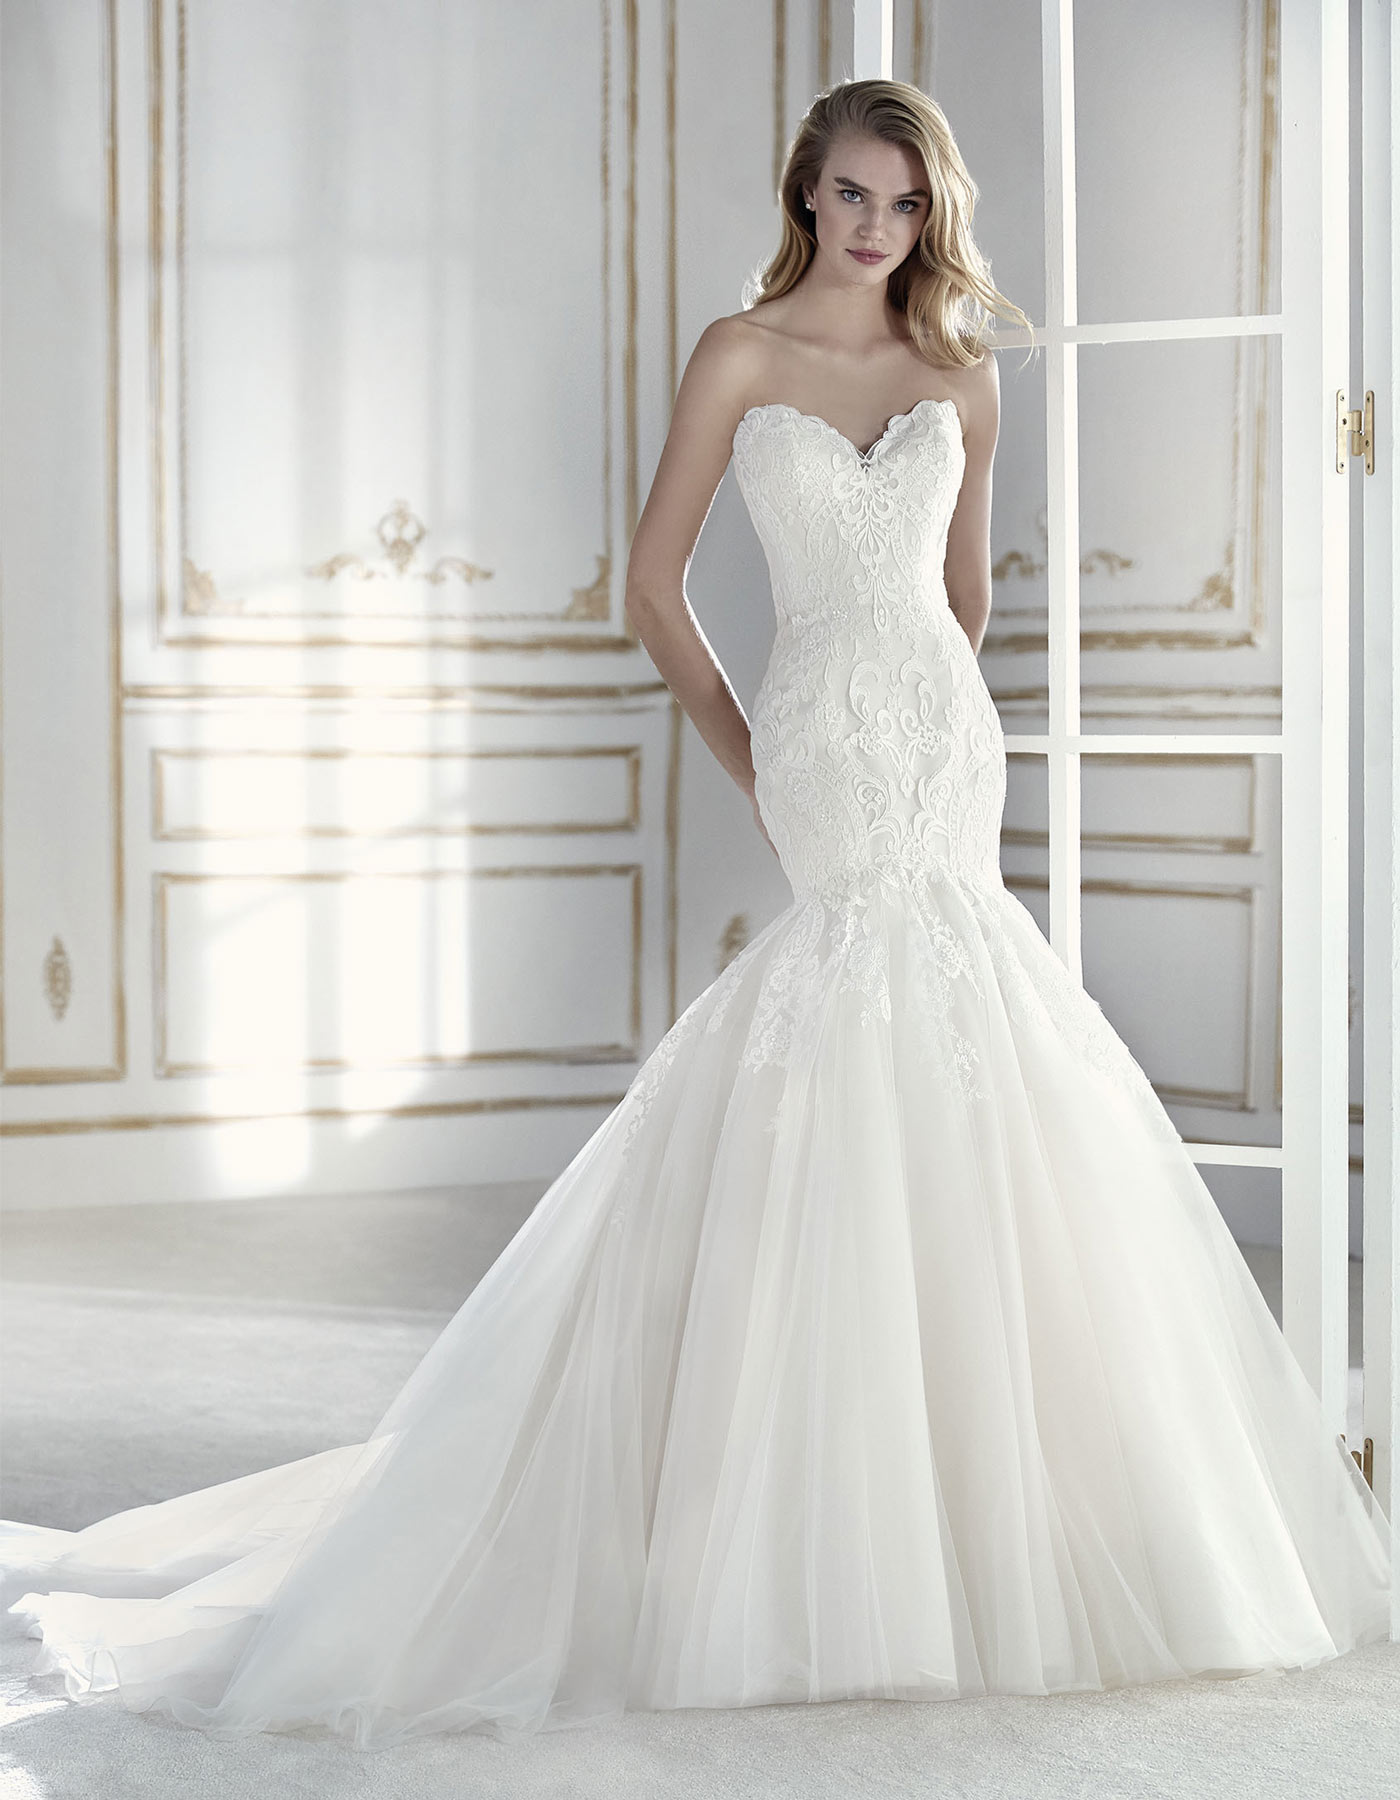 Fishtail lace wedding dress paulet by la sposa for La sposa wedding dress